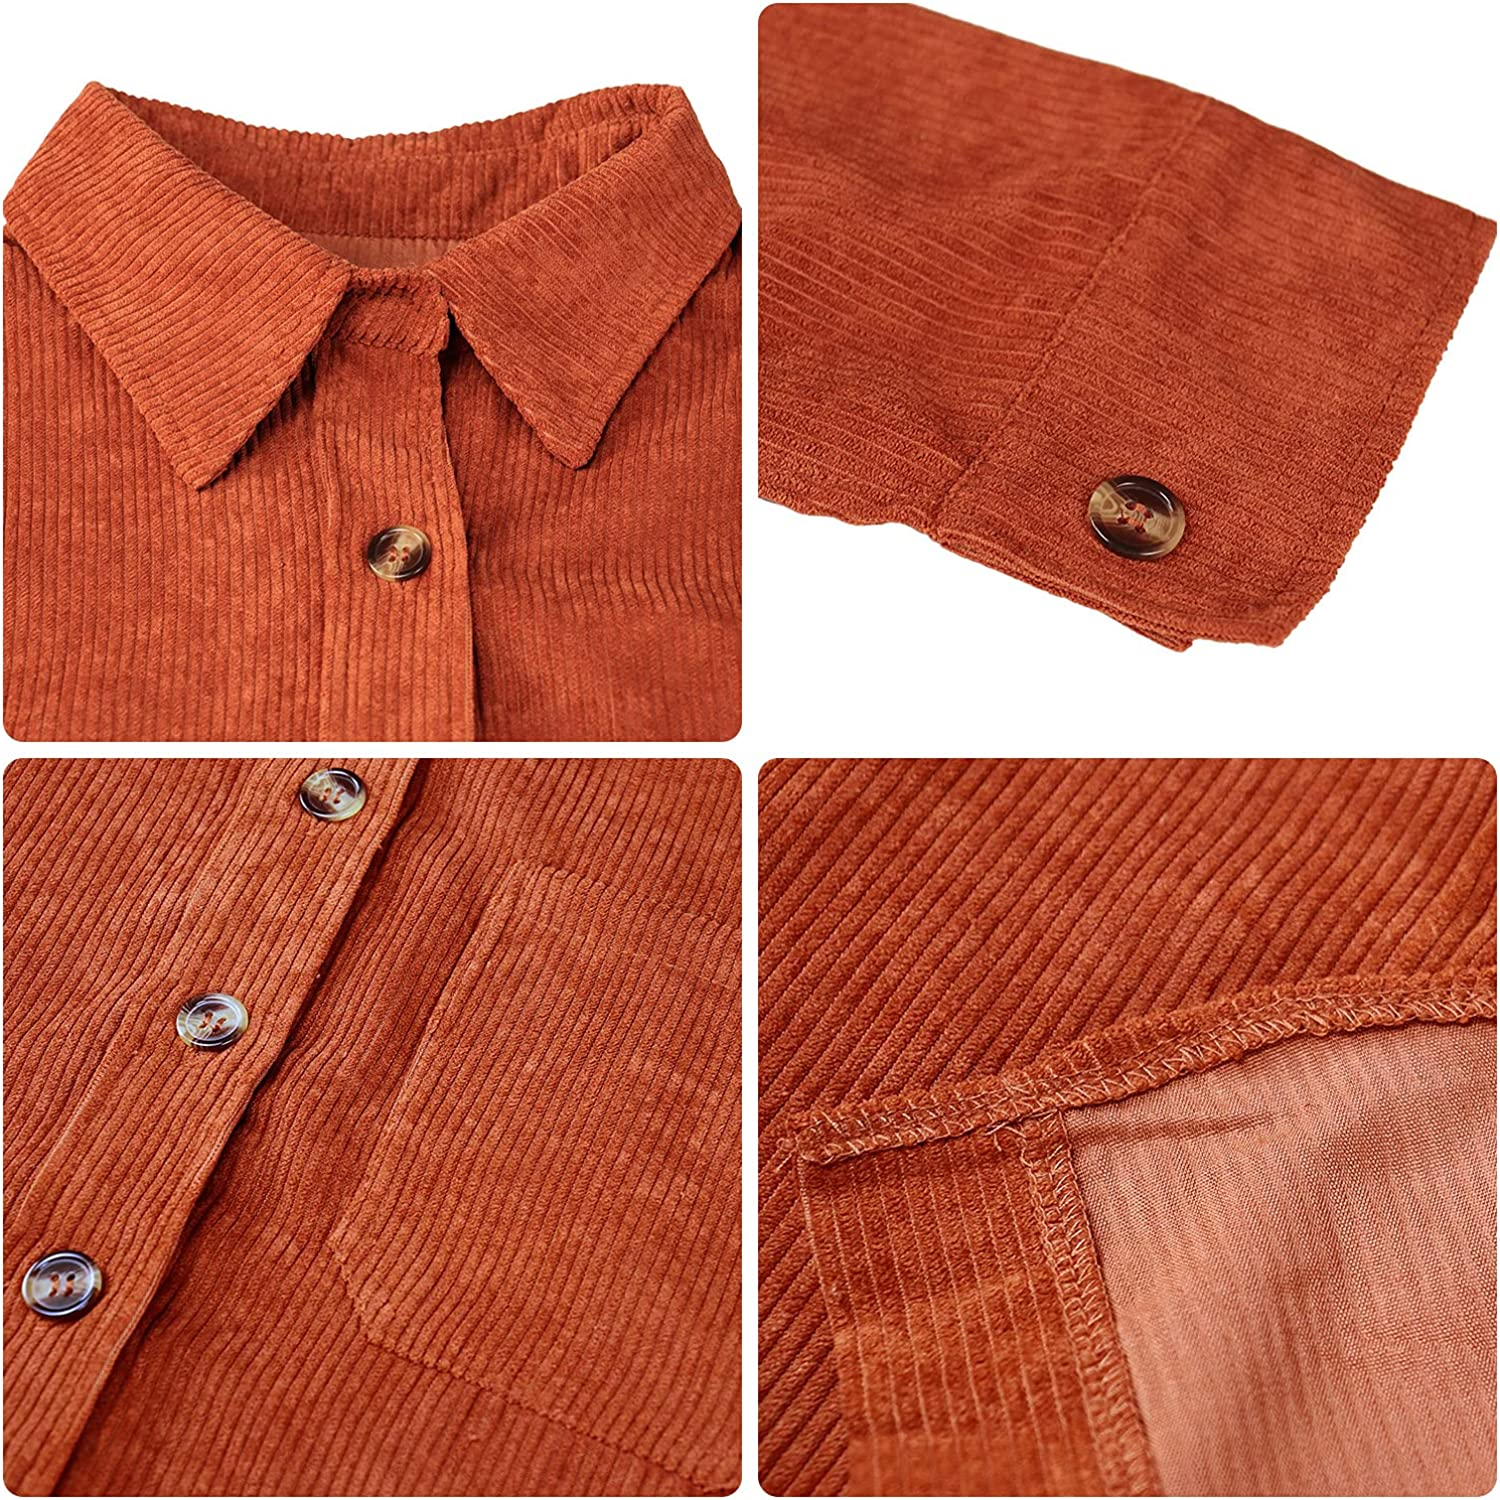 Women's Corduroy Long Sleeve Lapel Button Down Shirt Oversized Jackets Blouses Tops with Pocket